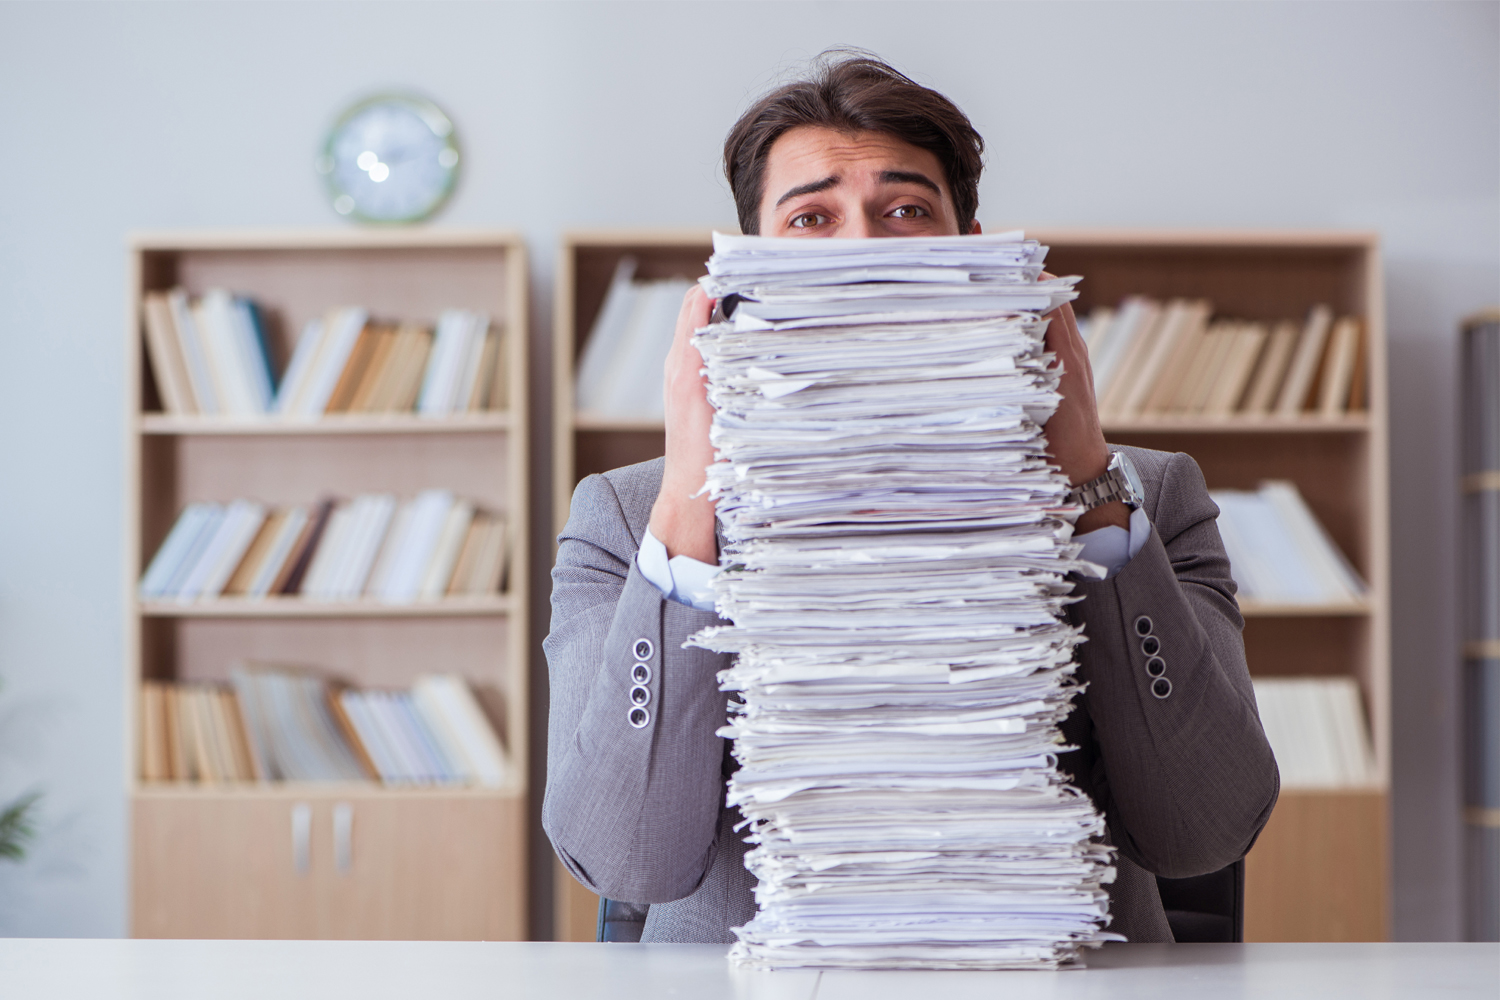 Employee having issues with stack of paper